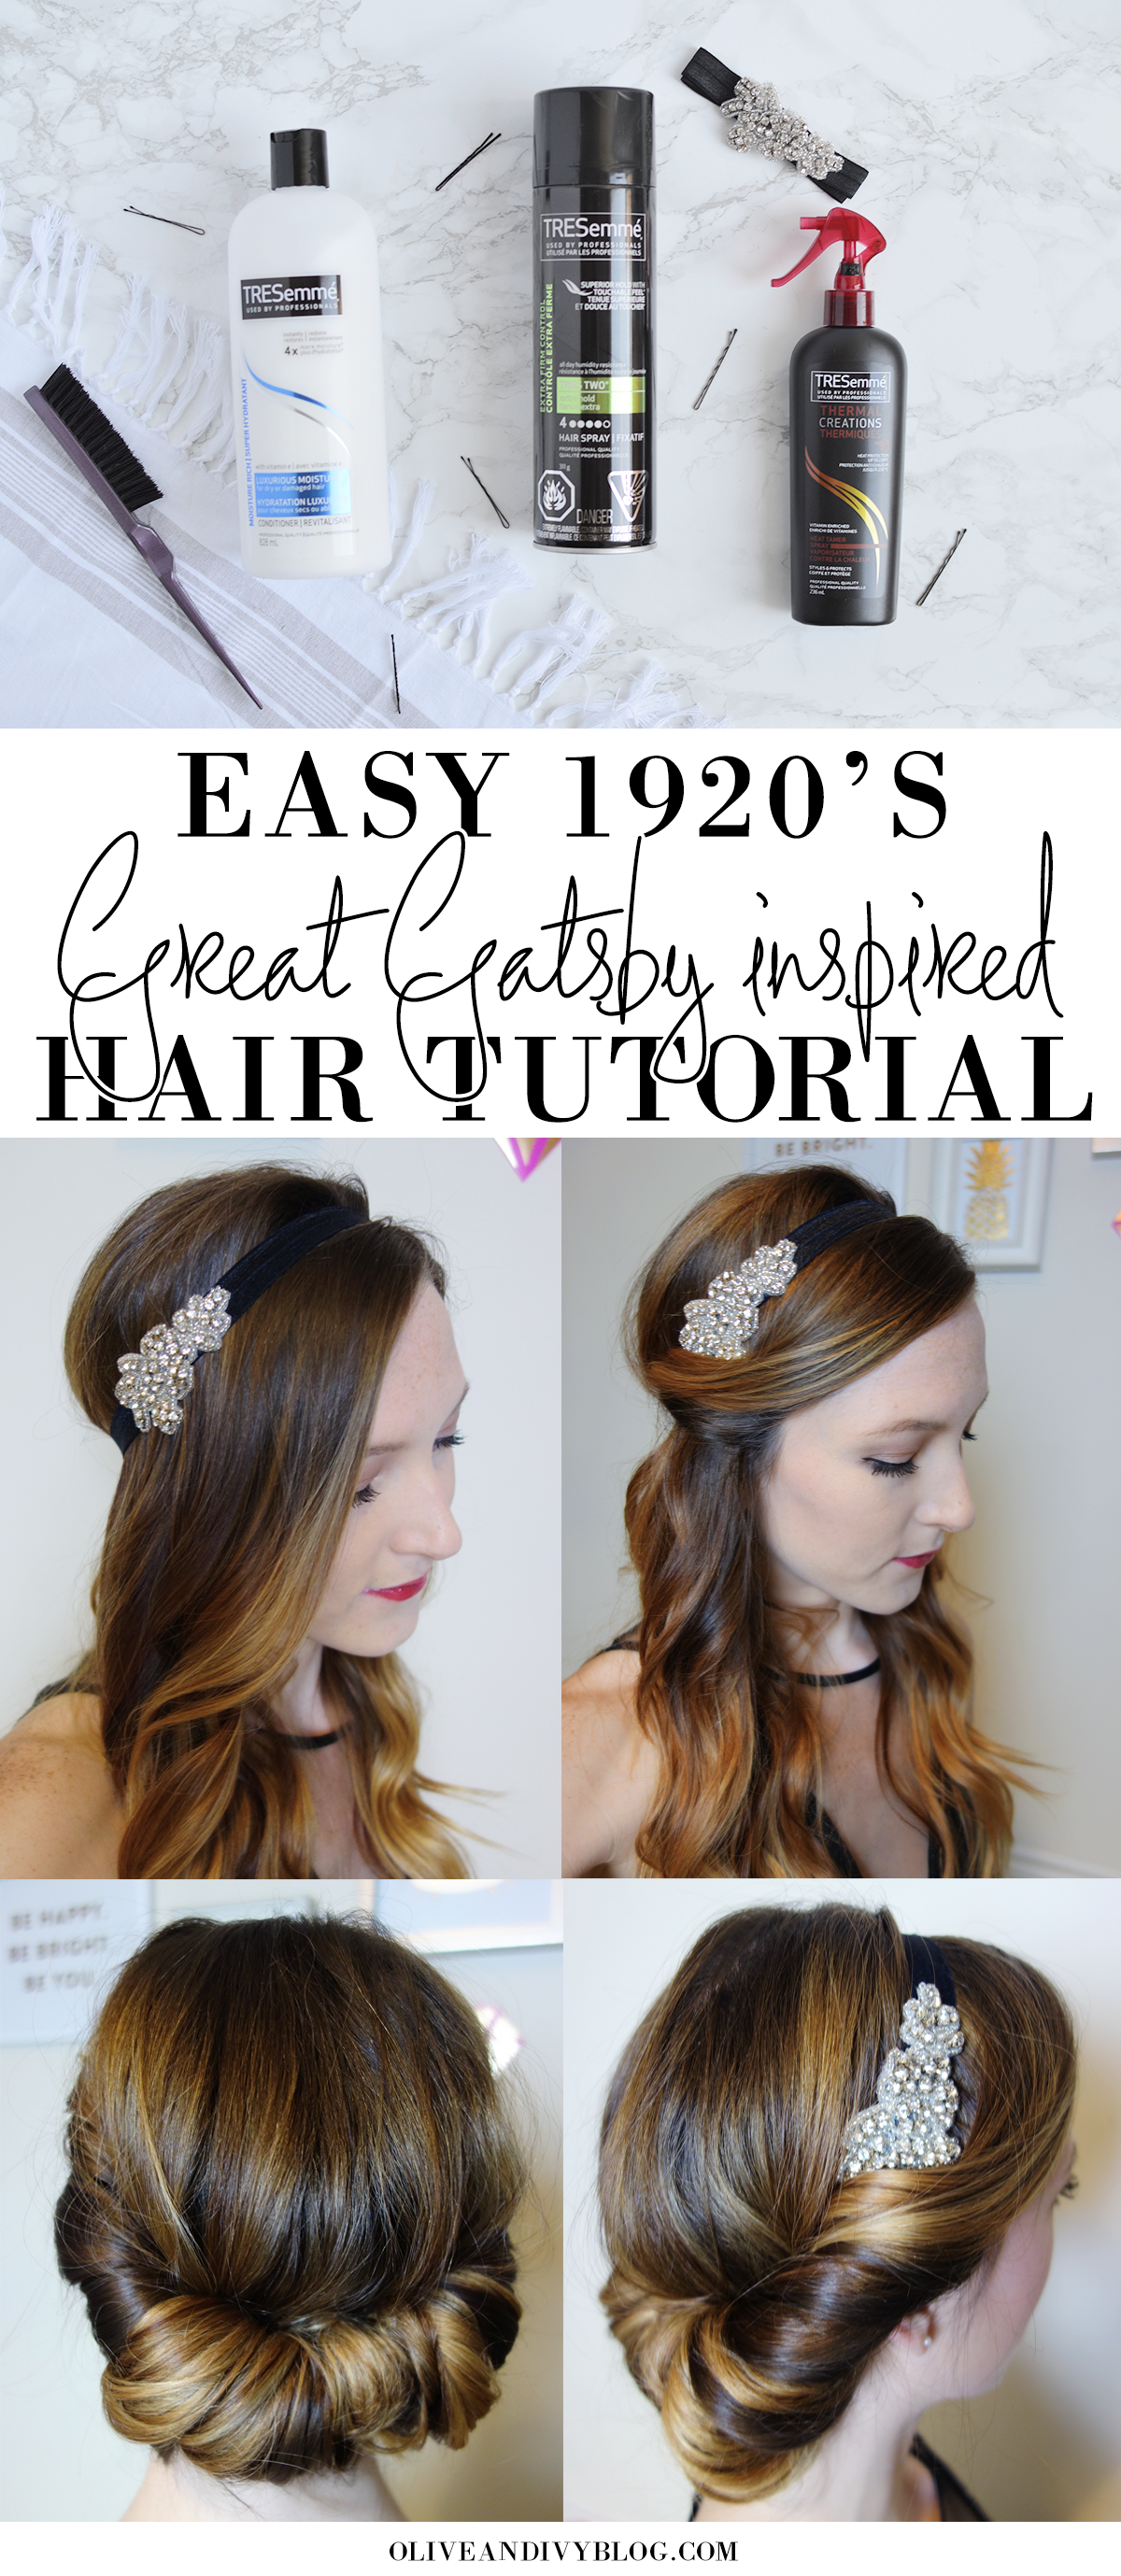 easy 1920's great gatsby hair tutorial